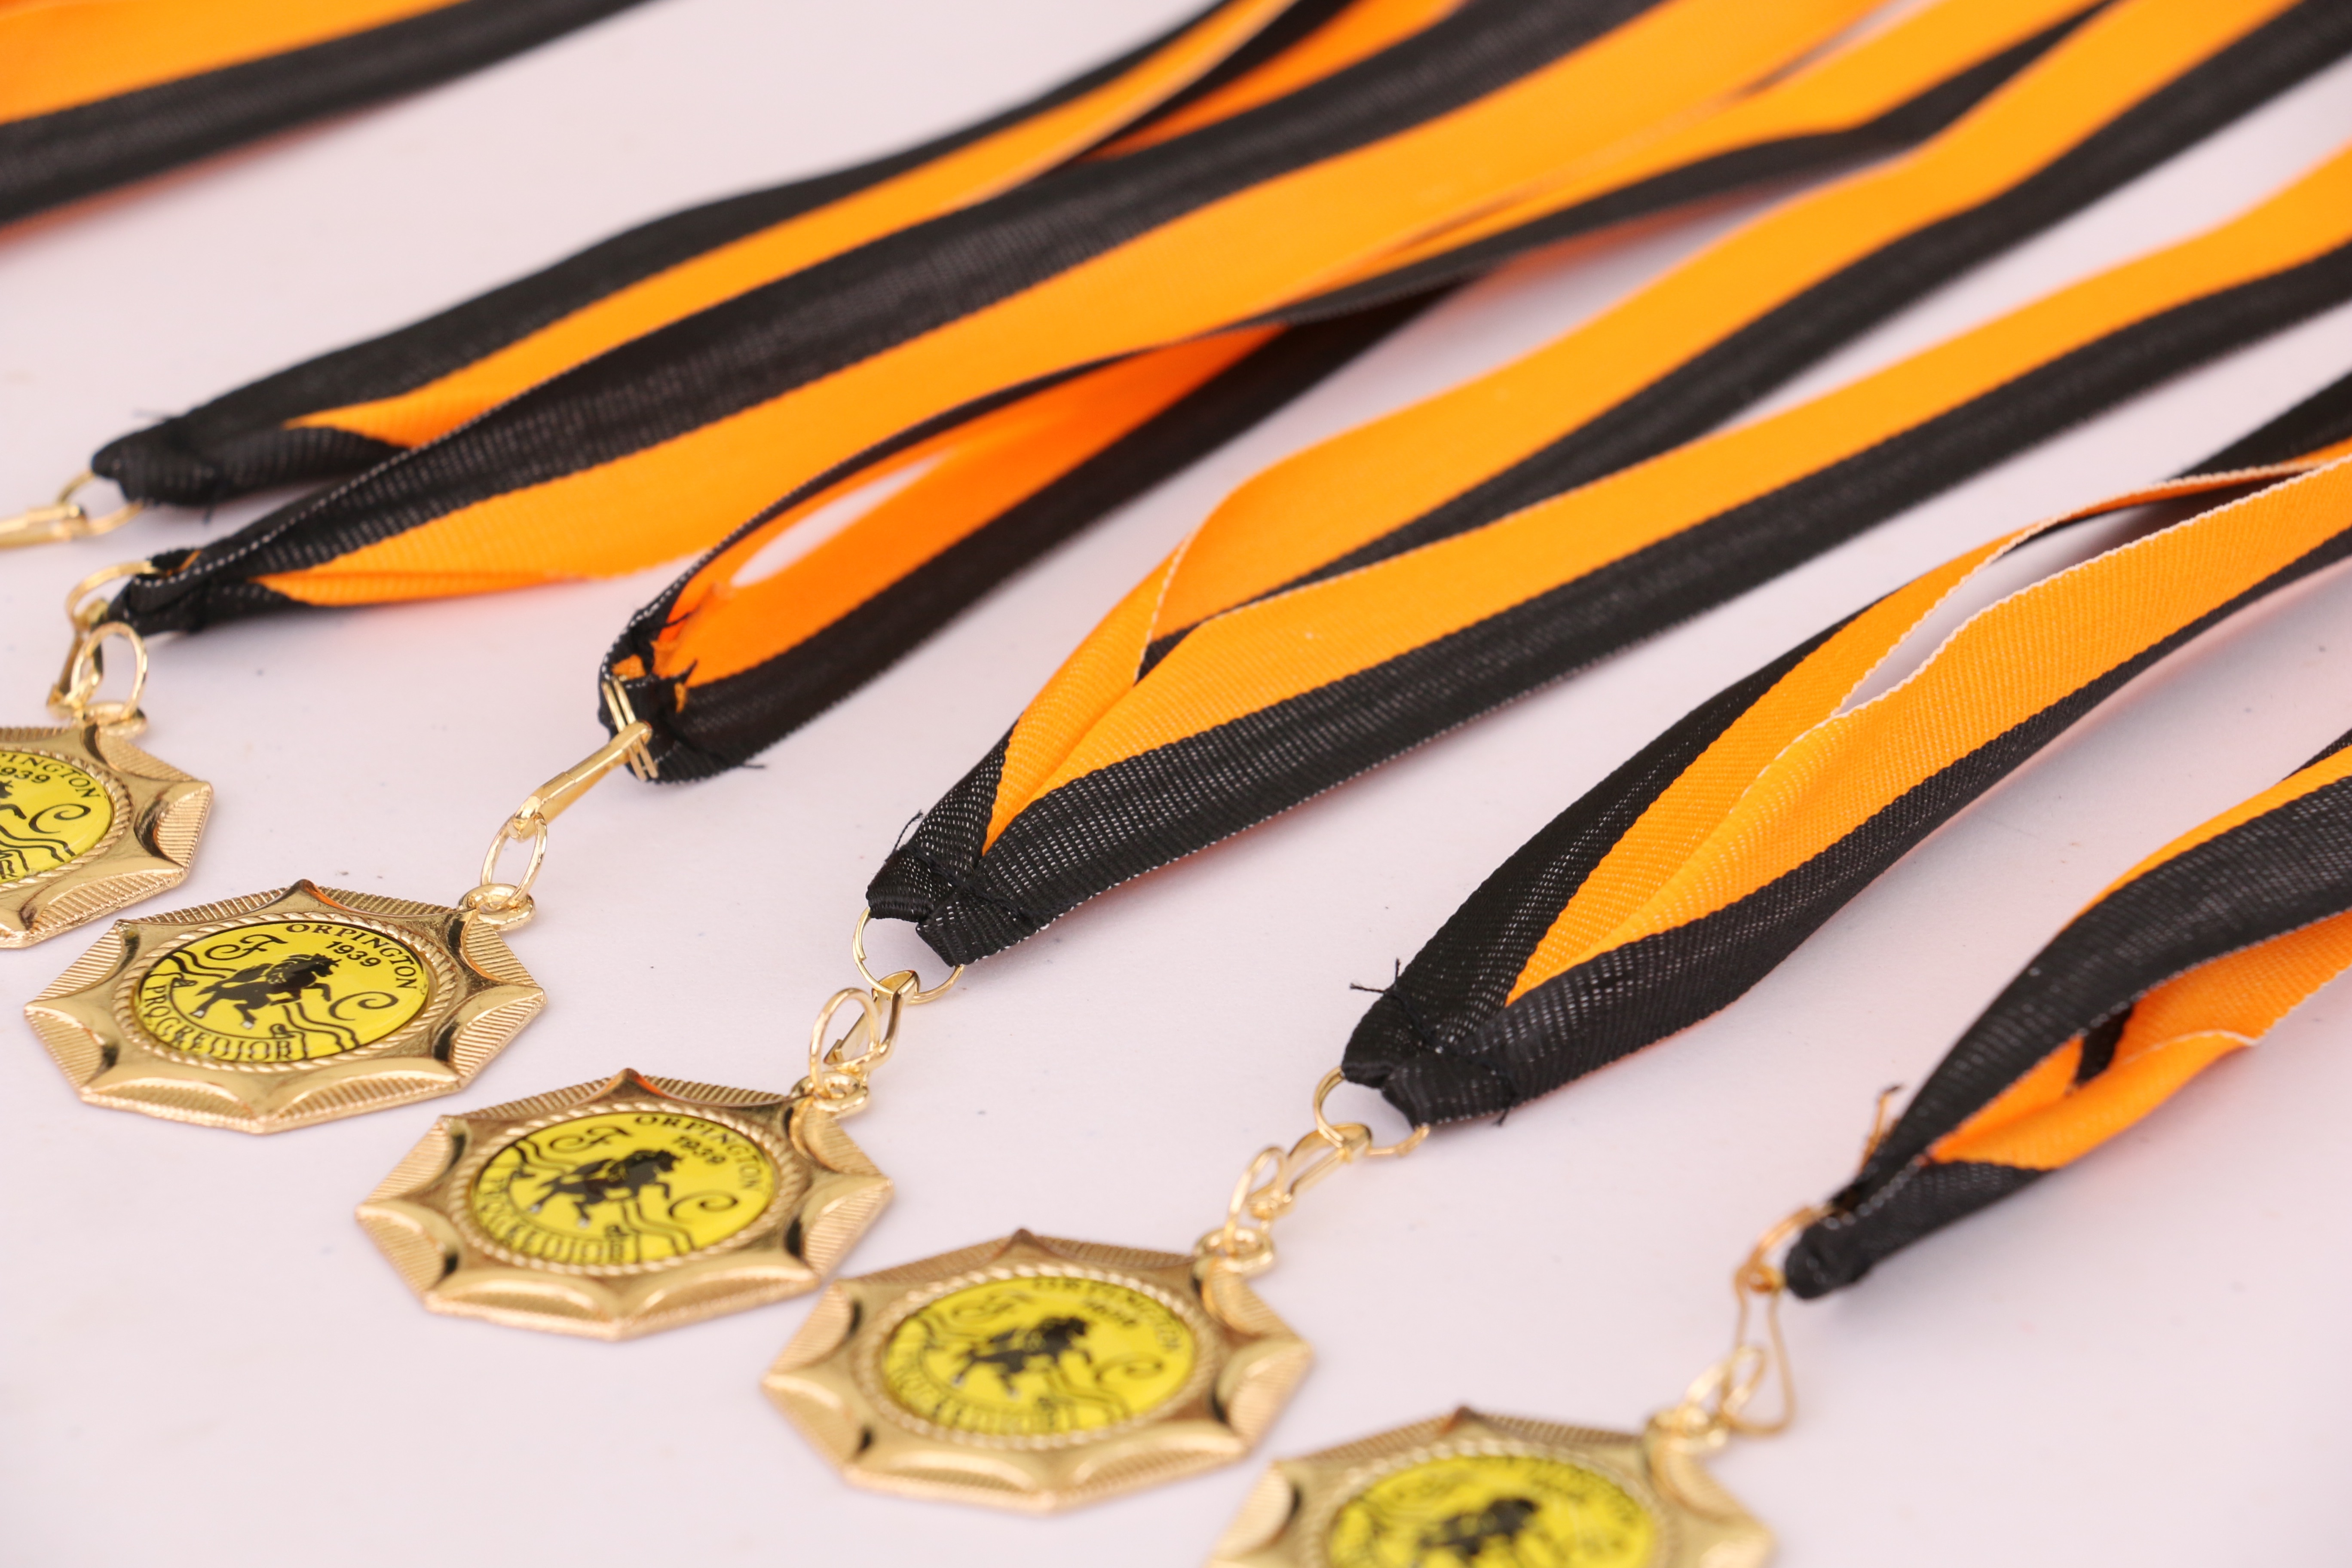 Medals to be won!